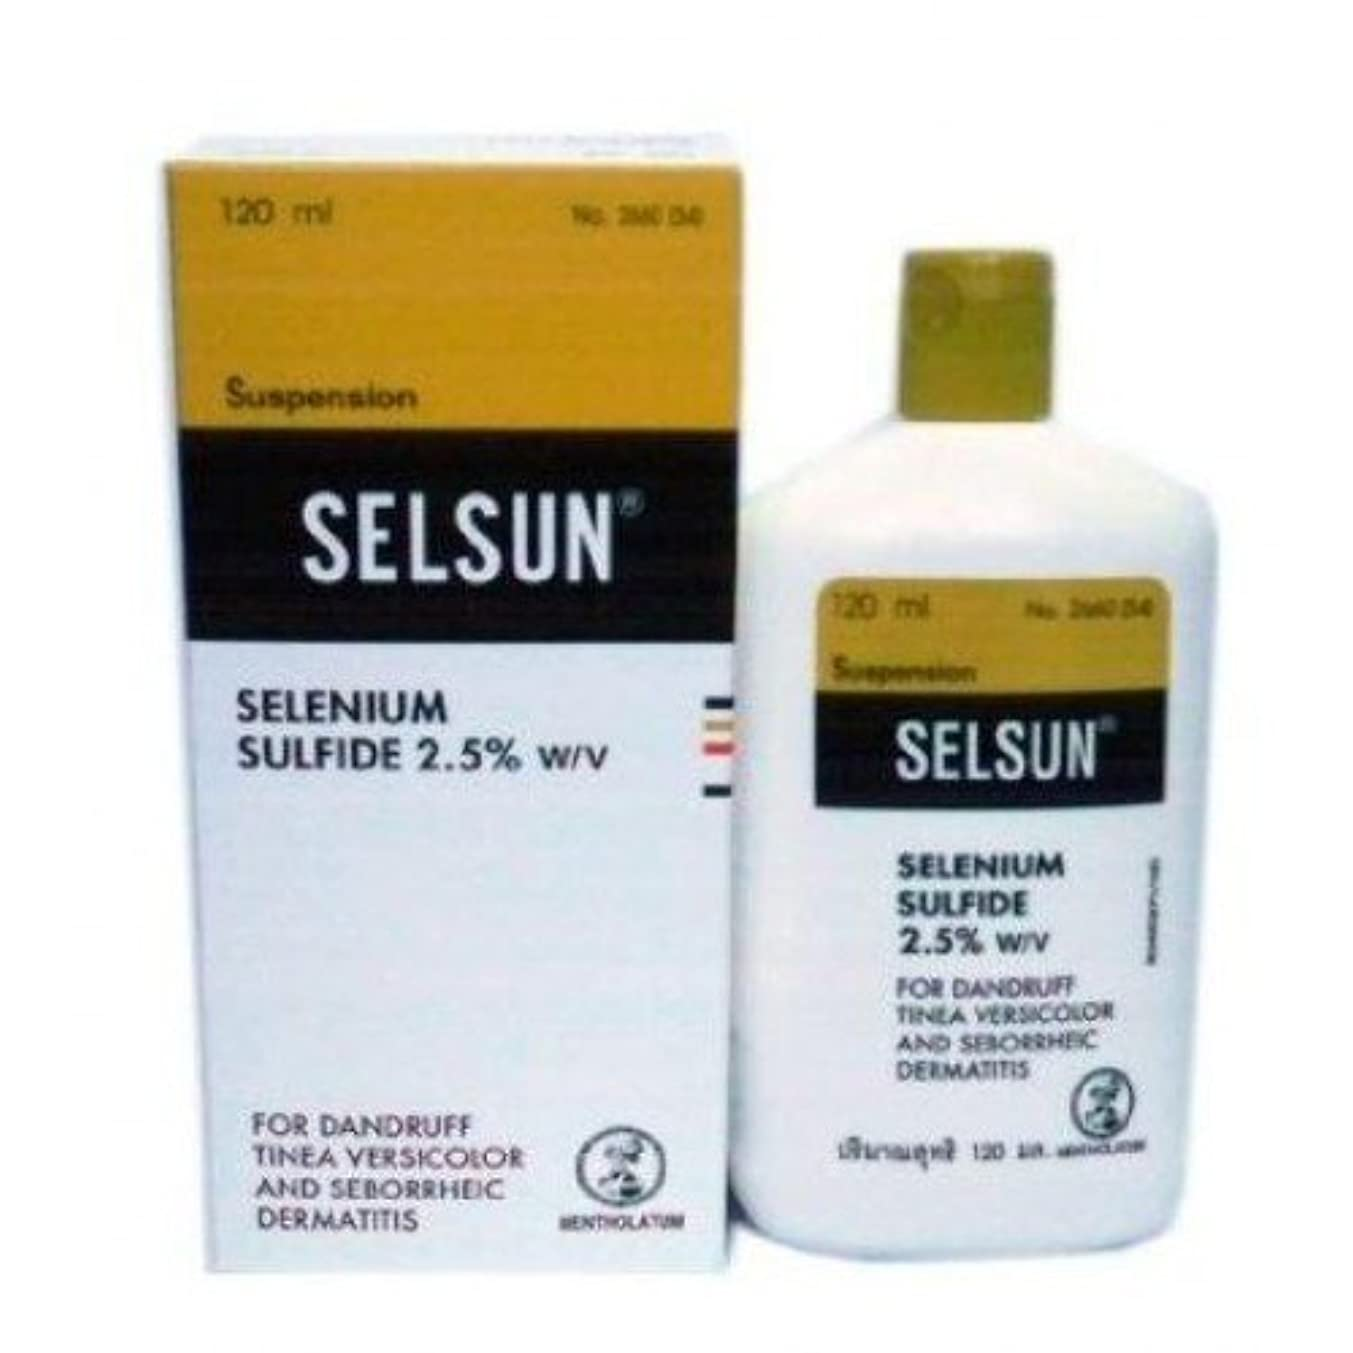 SELSUN anti-dandruff shampoo 120ml  セルサン シャンプー